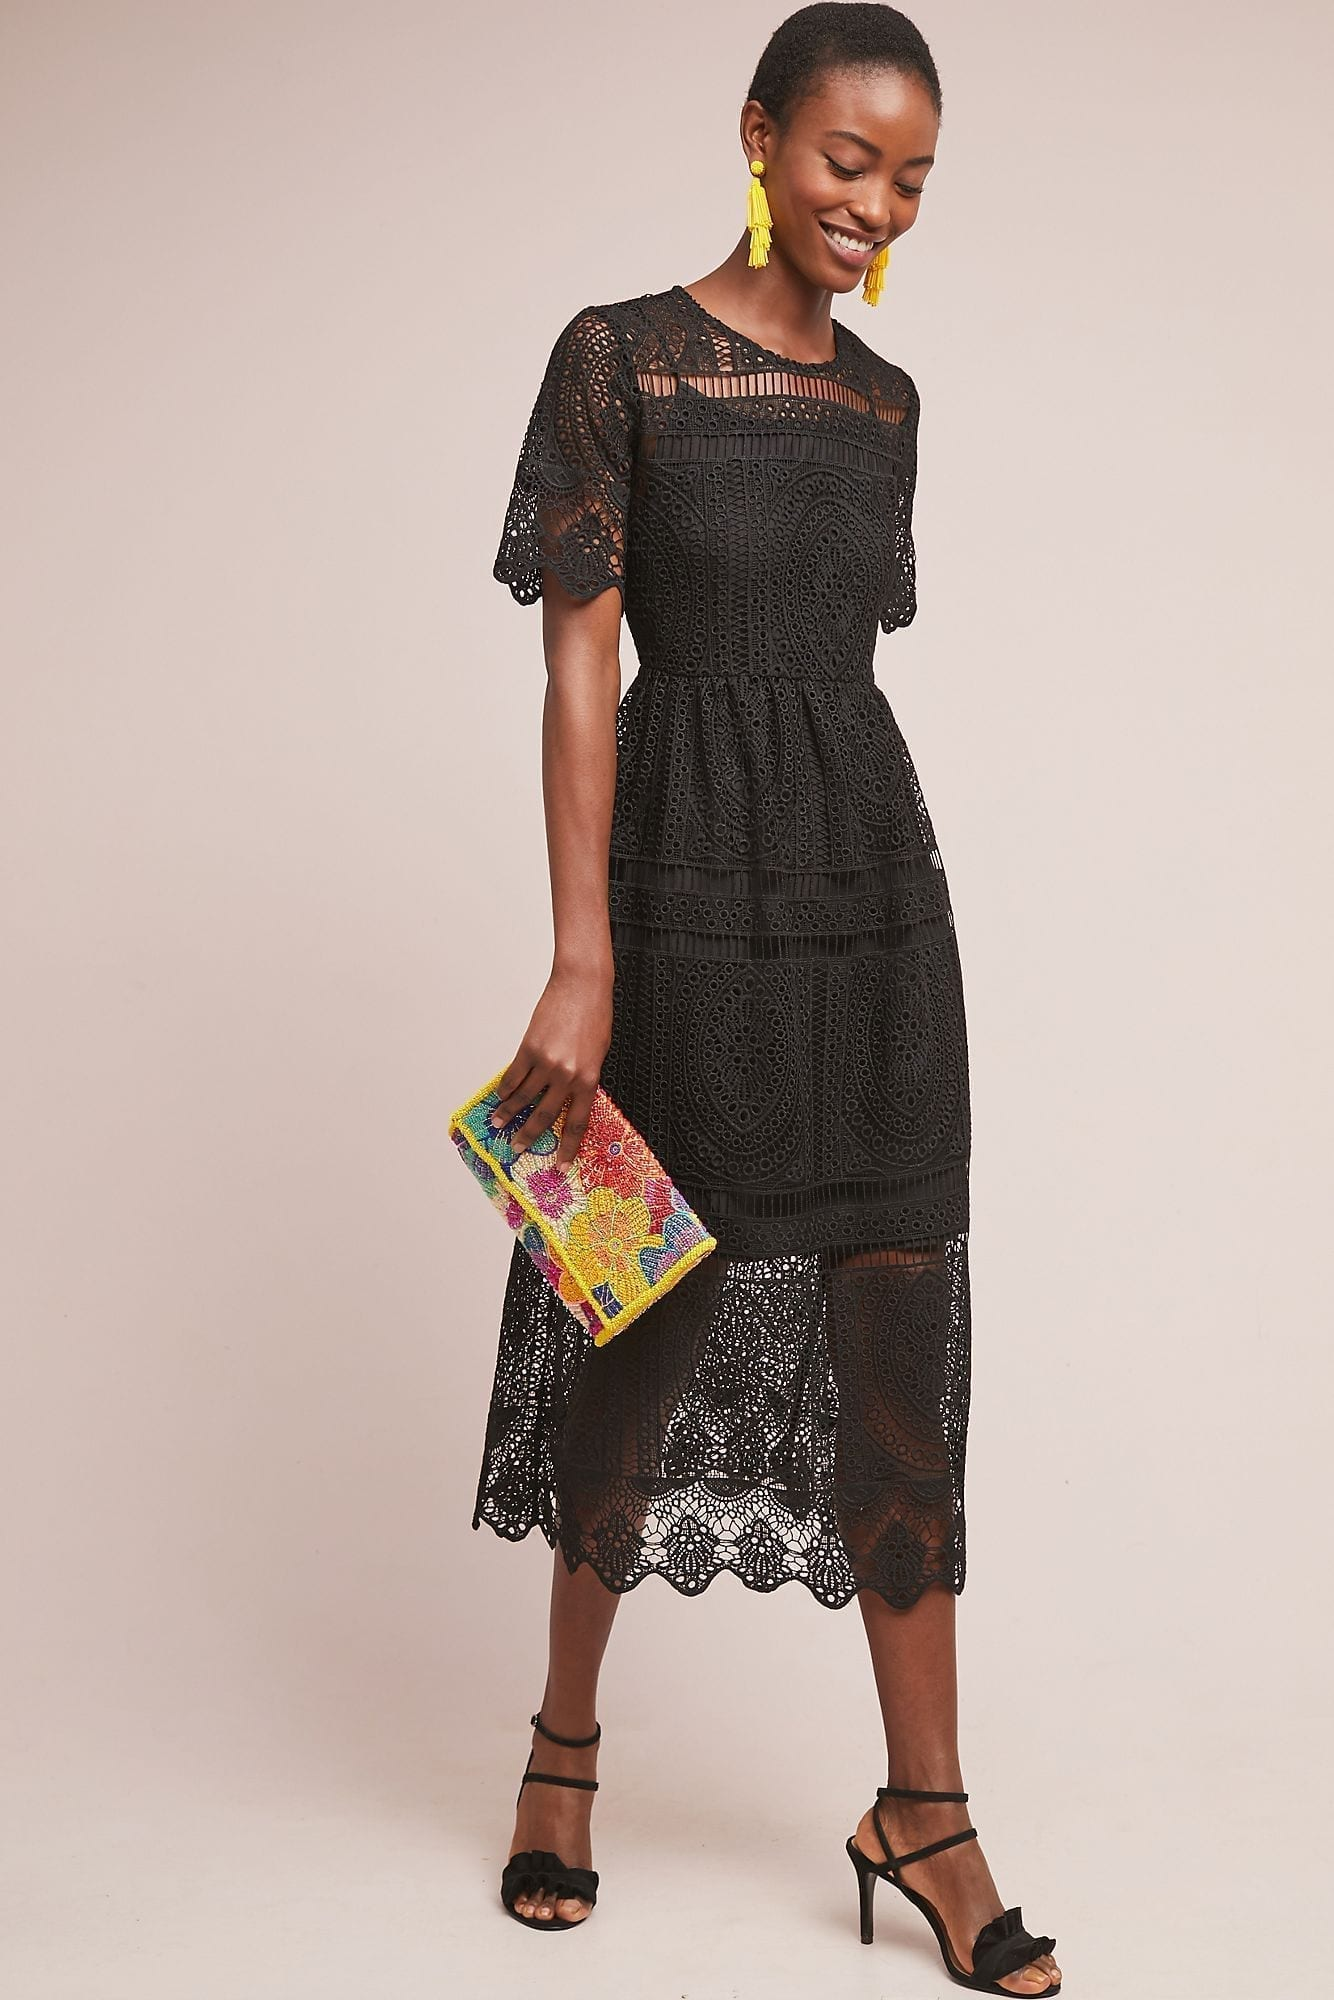 ERI + ALI Paiella Eyelet Black Dress